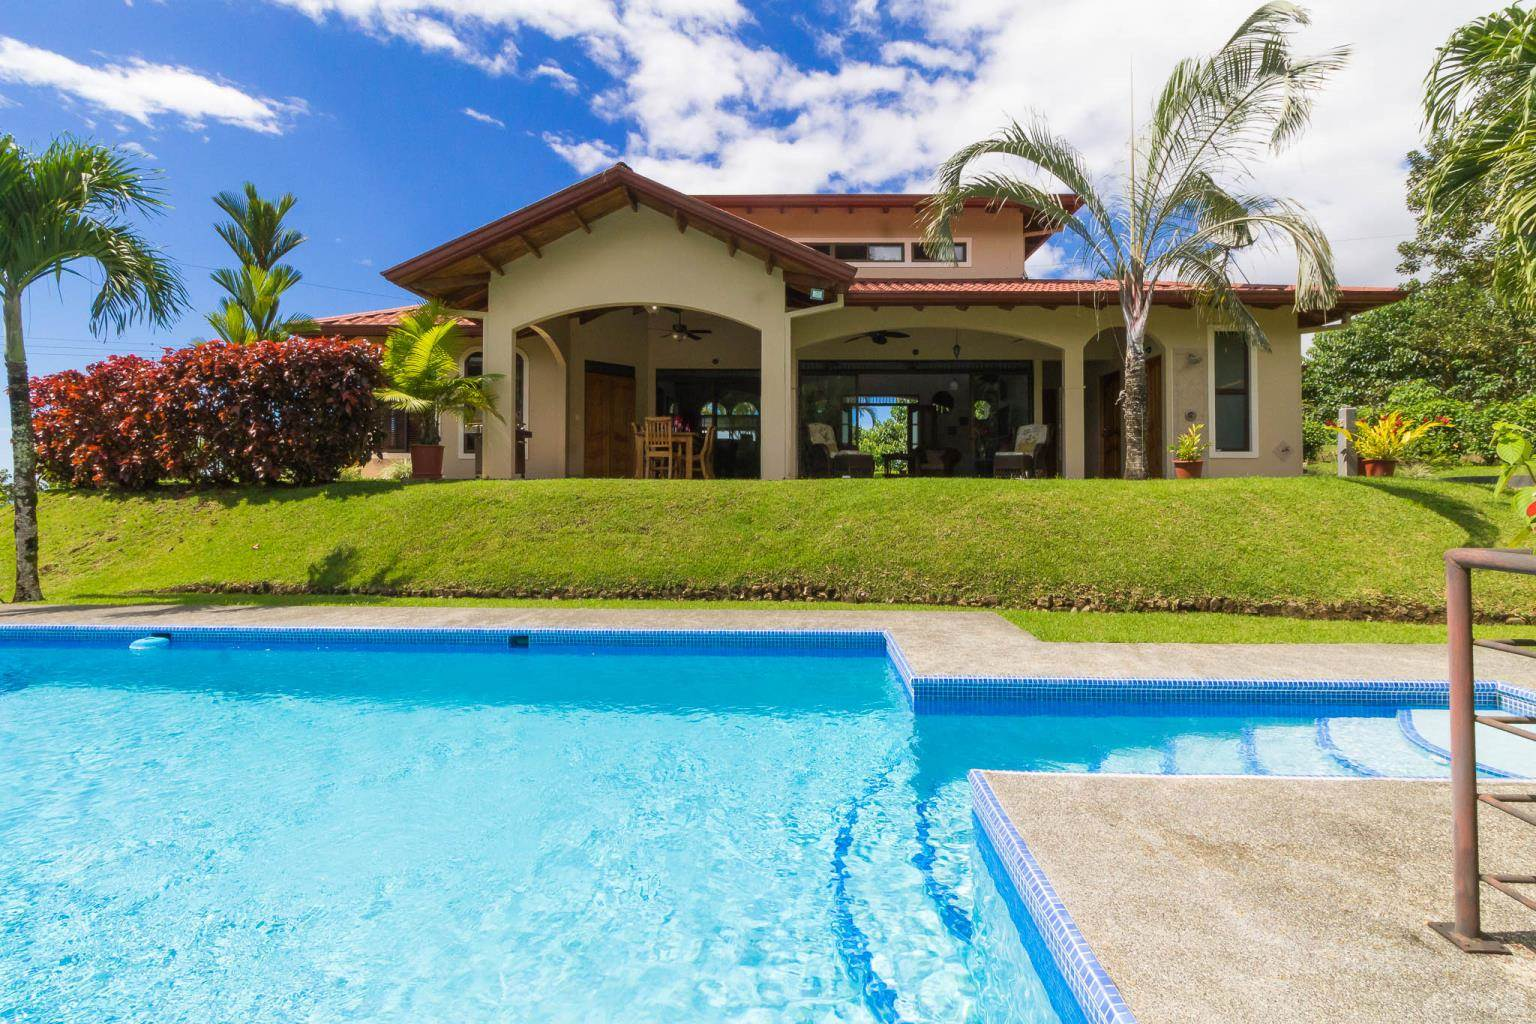 Residential For Sale in Light and bright! Lovely 3-bedroom, 2.5-bath home with pool and ocean views in Phase 9 in Ojochal, Ojochal, Puntarenas ,60501  , Costa Rica